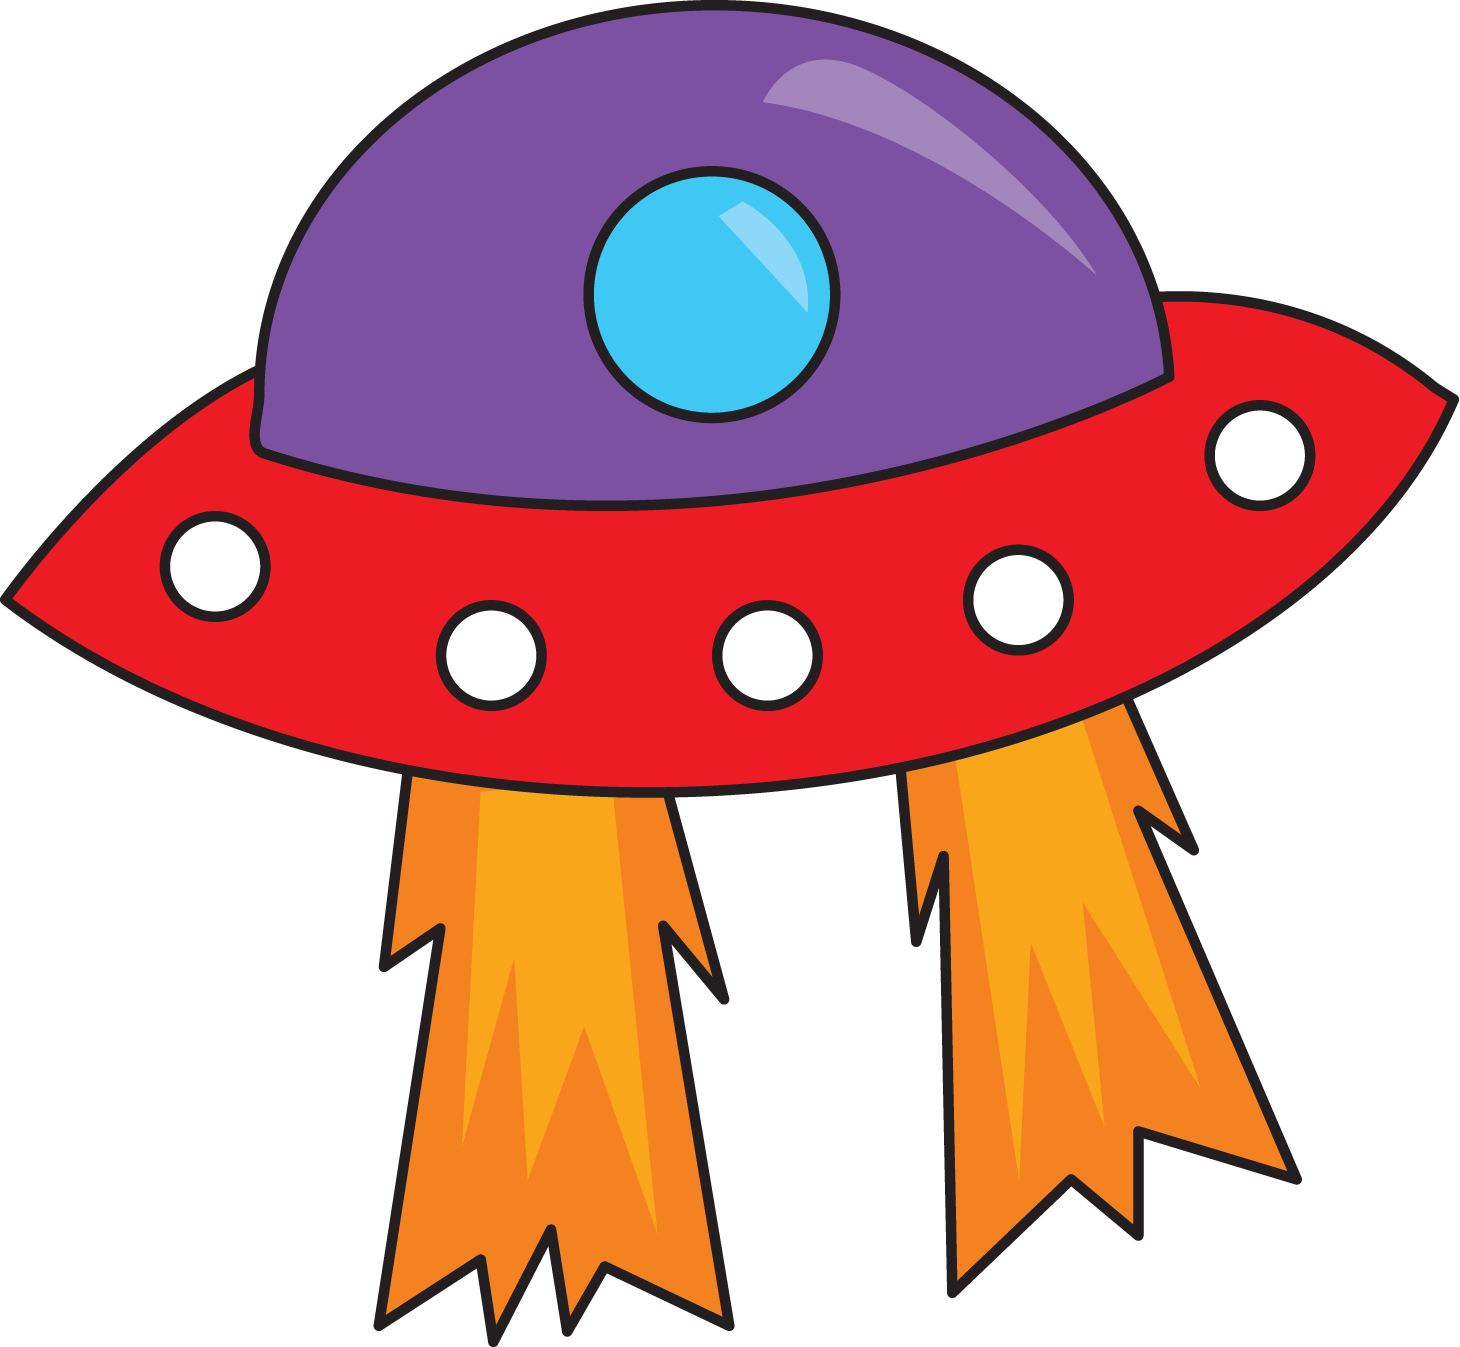 1460x1347 Cartoon Ufo Clipart Cliparts And Others Art Inspiration